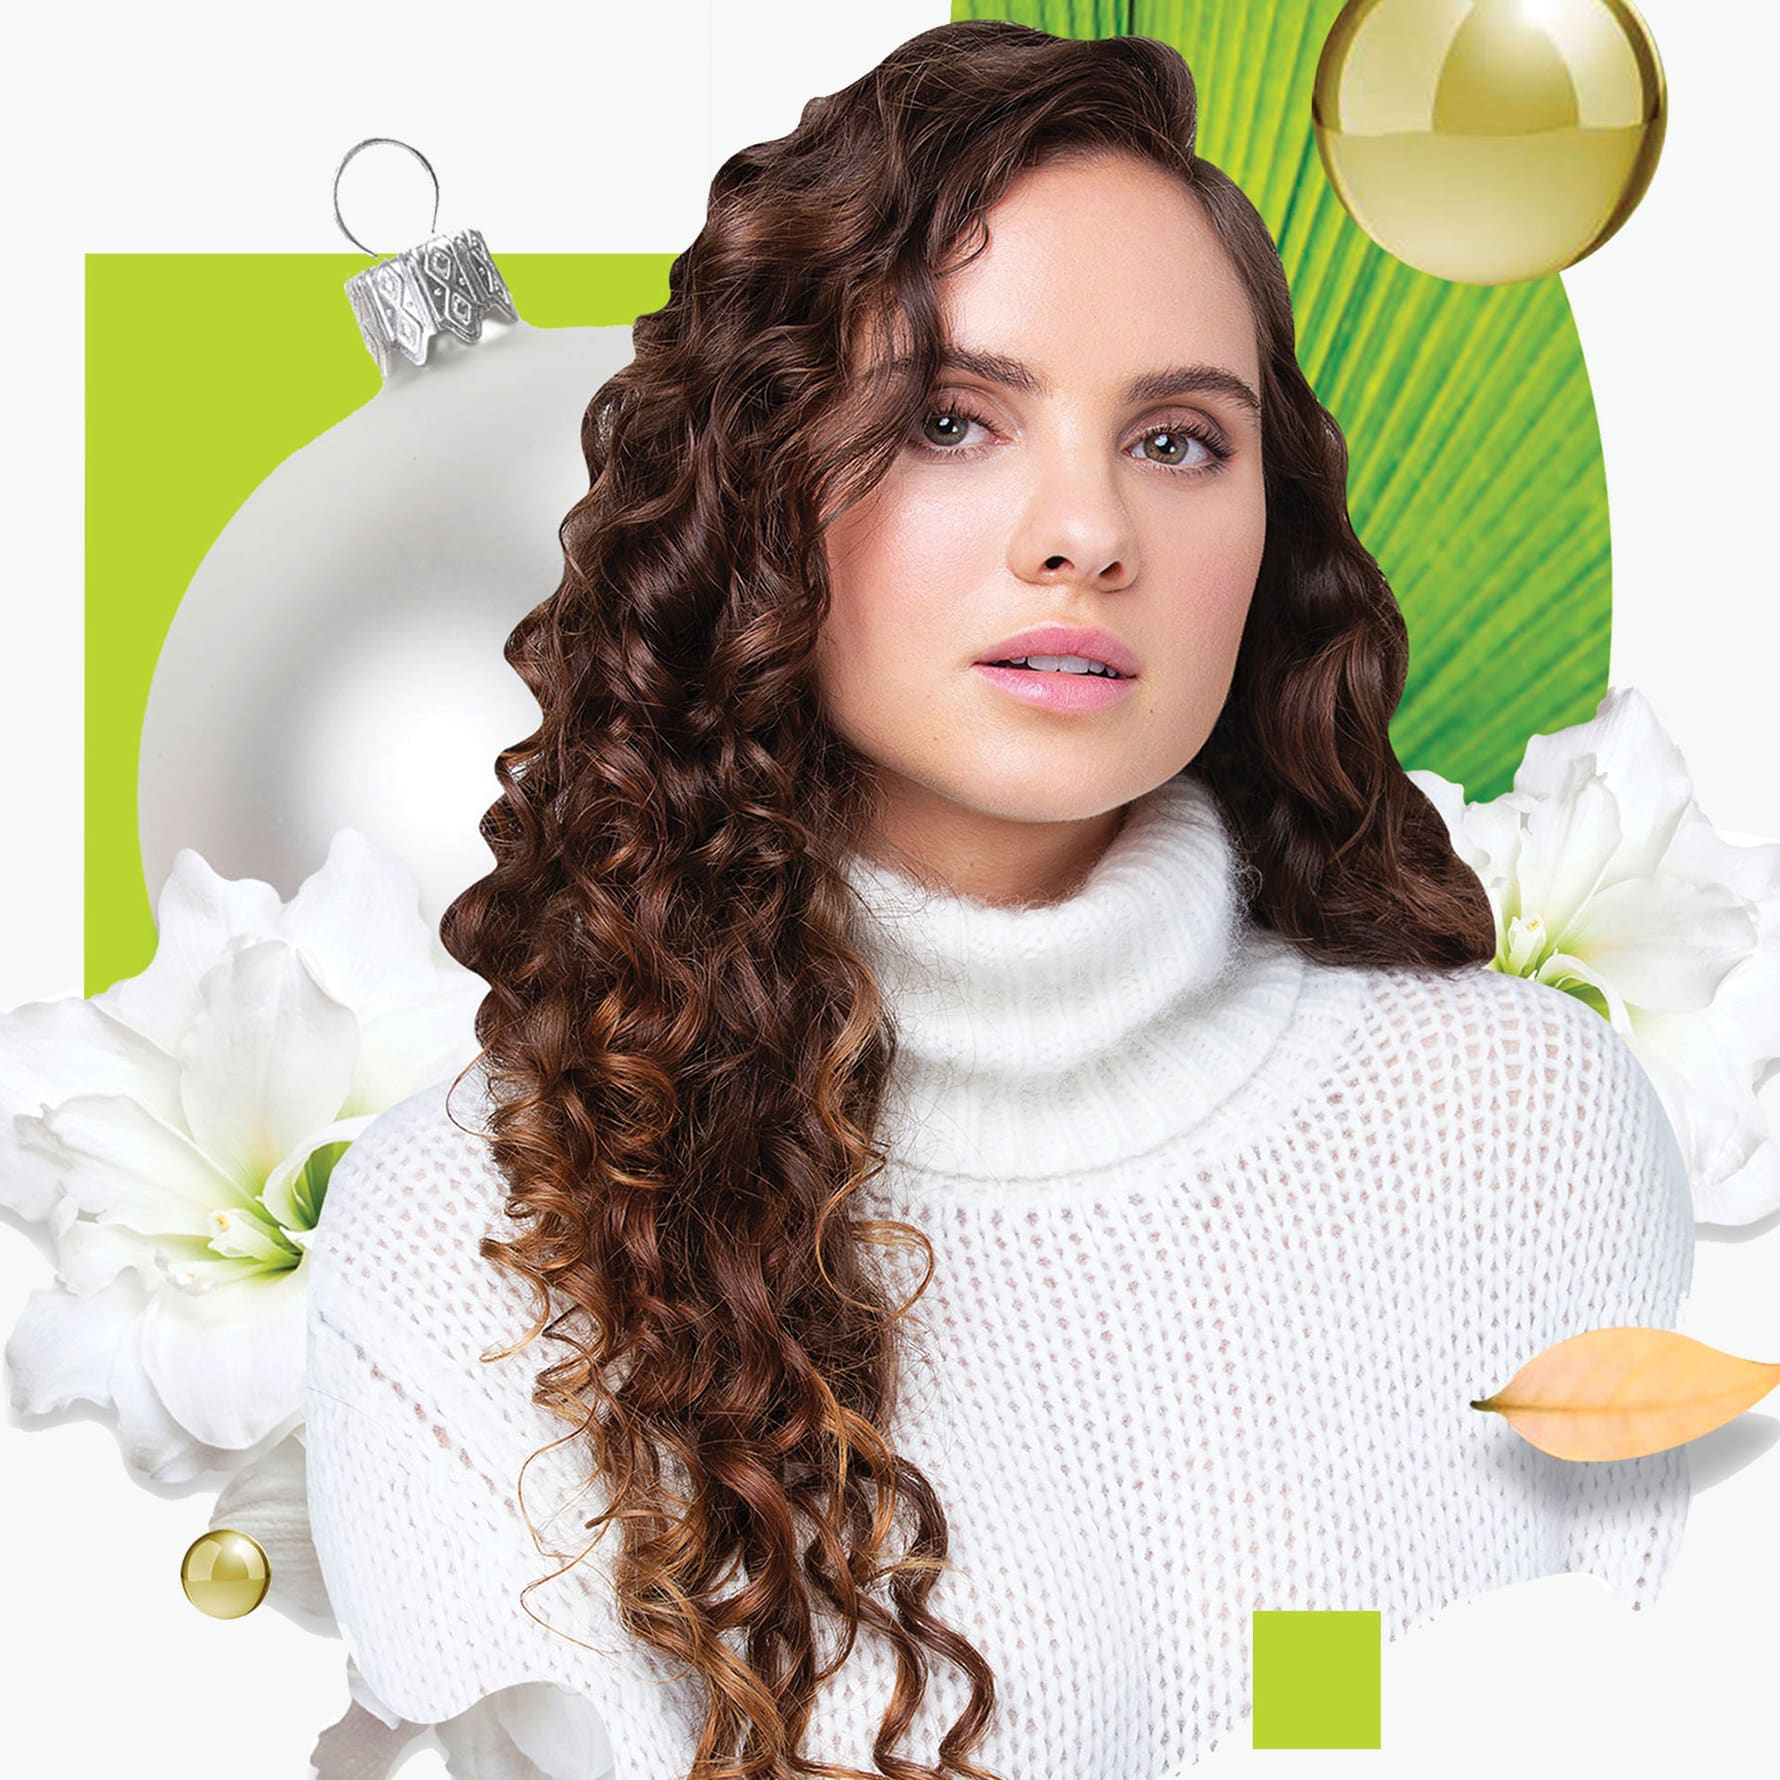 curly hair woman with decorative collage background